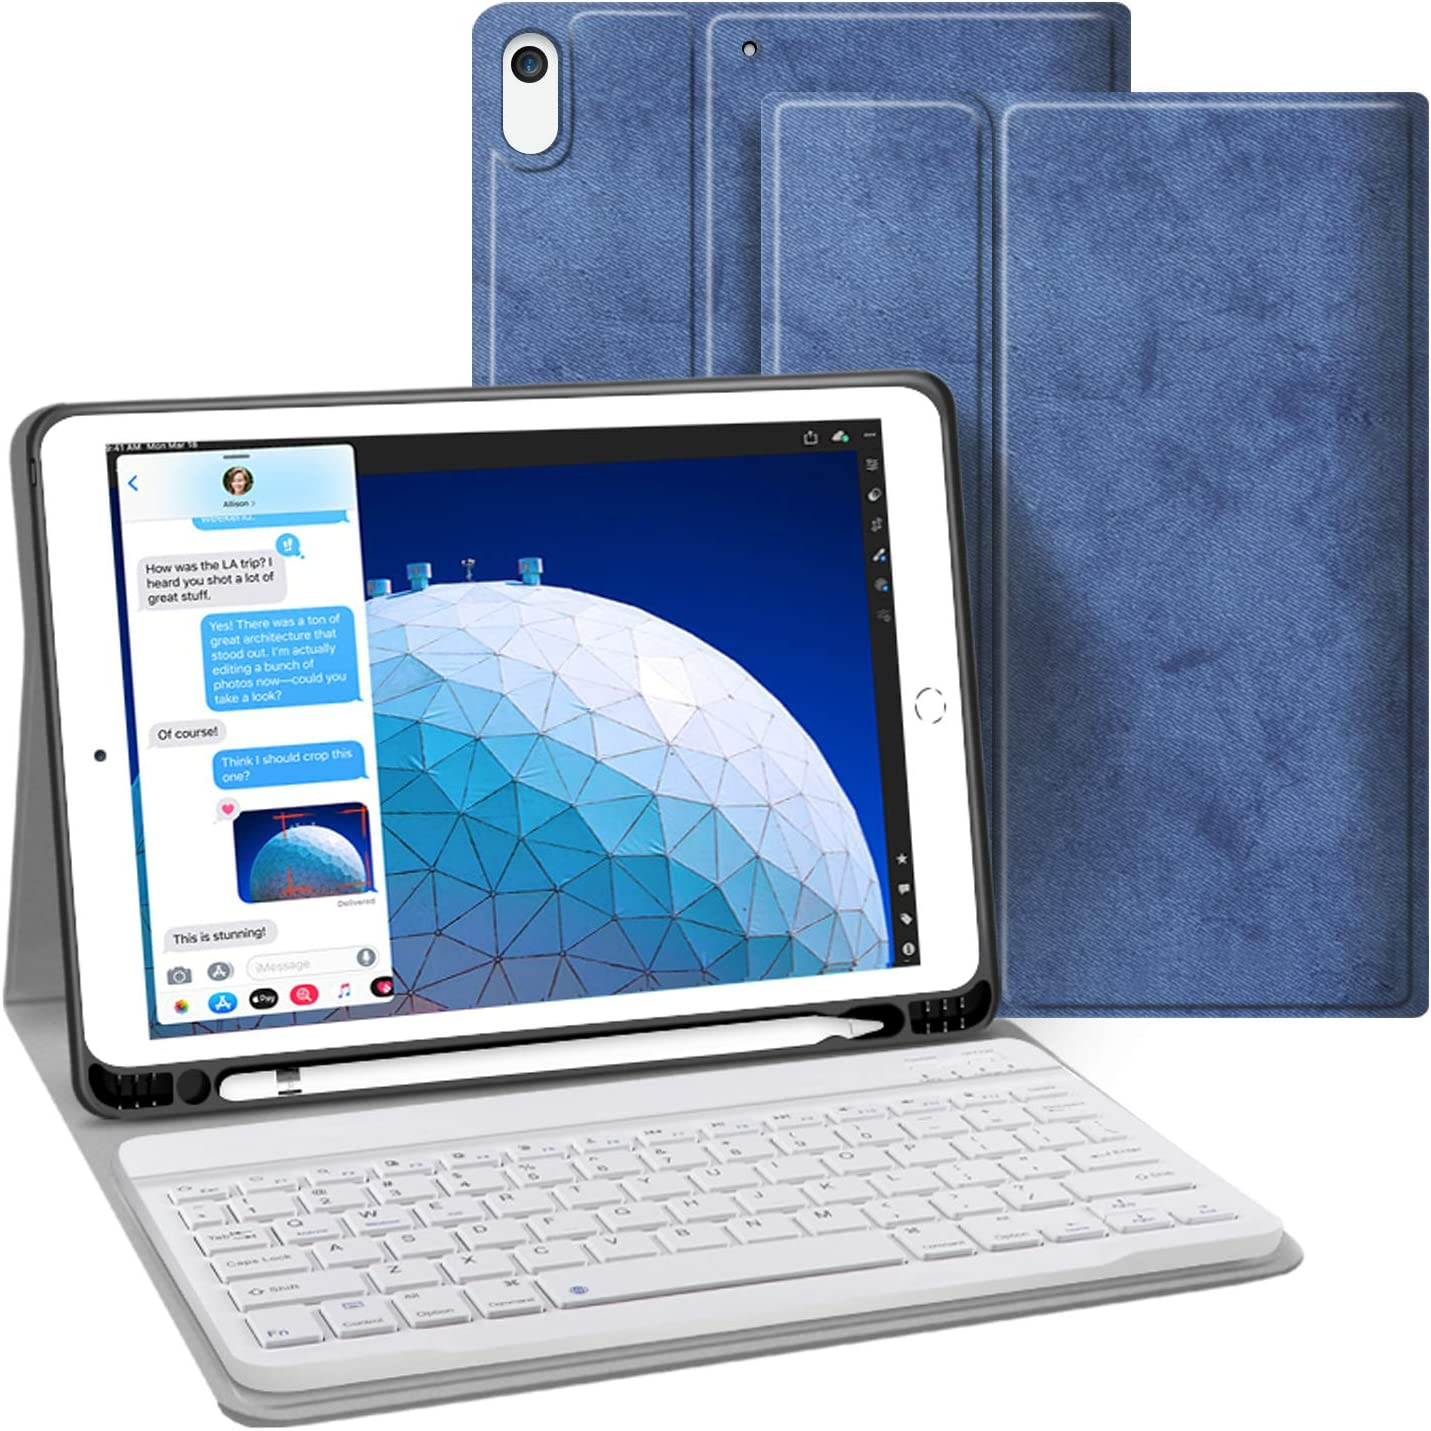 iPad Keyboard Case for iPad 10.5, iPad Air 3 10.5 2019 3rd Gen iPad Pro 10.5 2017 JUQITECH Smart Case with Keyboard Detachable Wireless Keyboard Magnetically Case Cover with Apple Pencil Holder, Blue